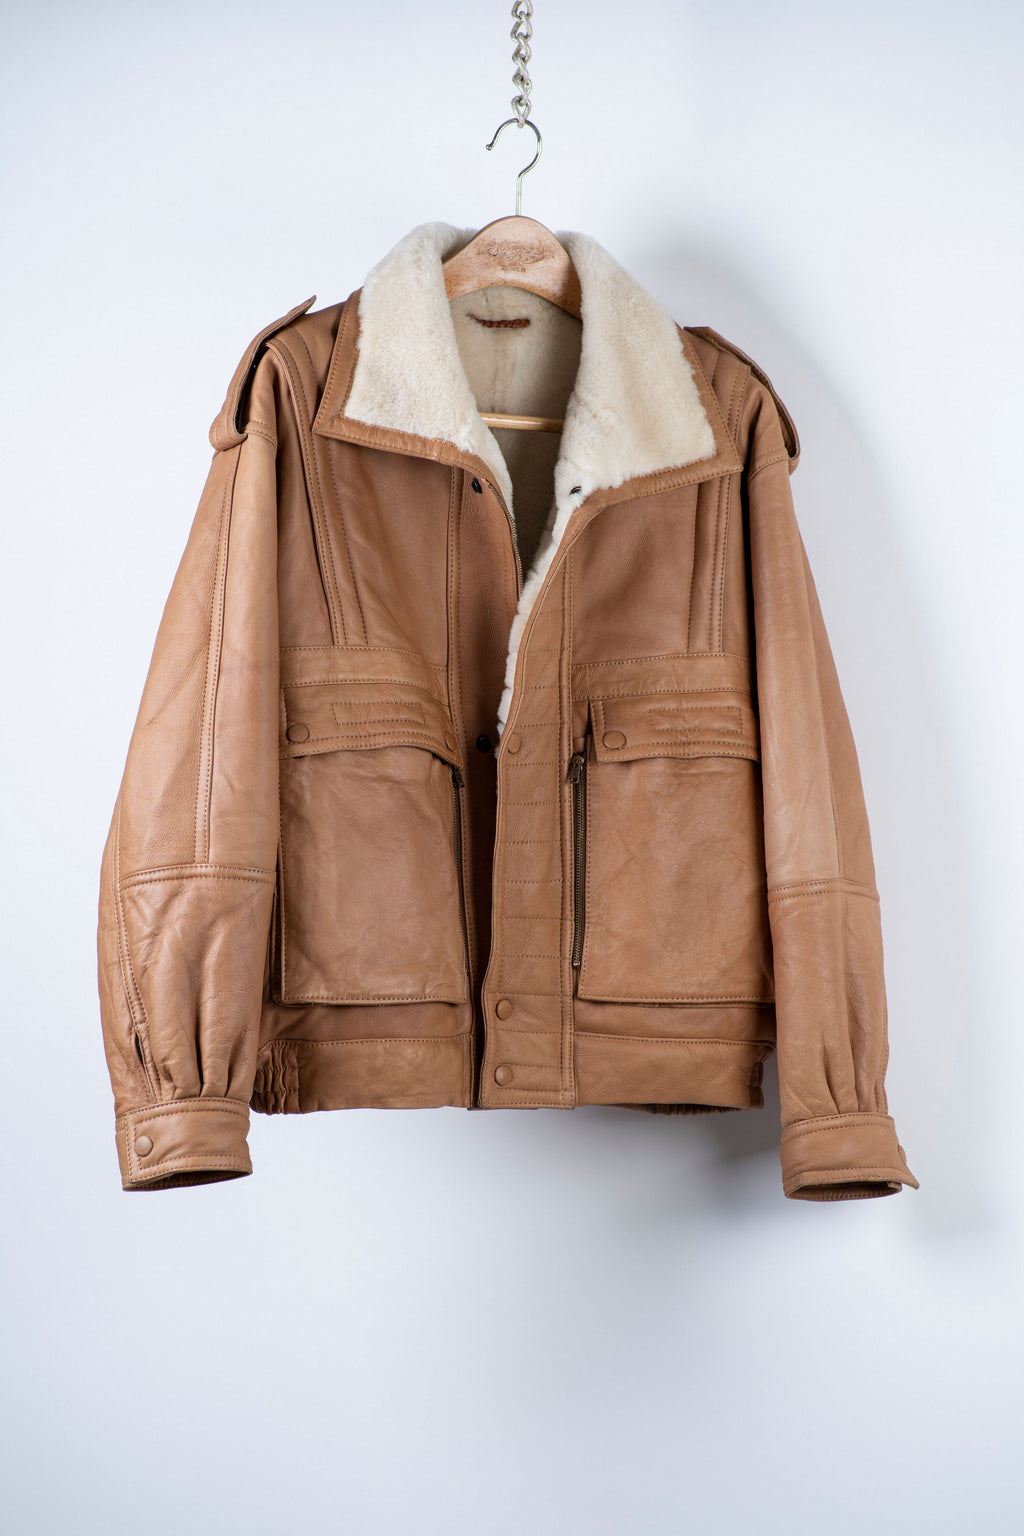 Men's Aviator / Flight Style Camel Brown Shearling Jacket, USA 40, EU 50